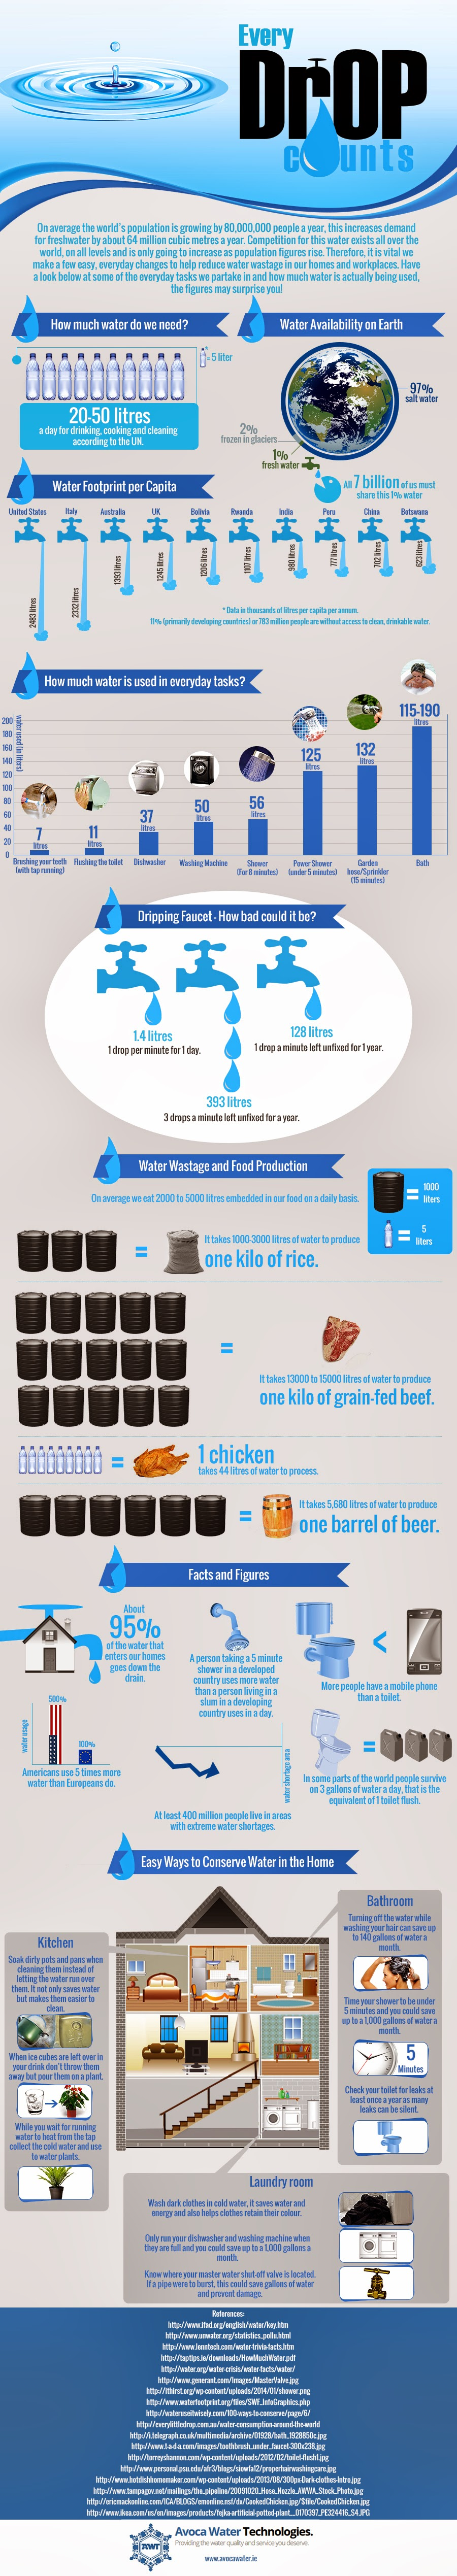 Image of Infographic on Water Wastage